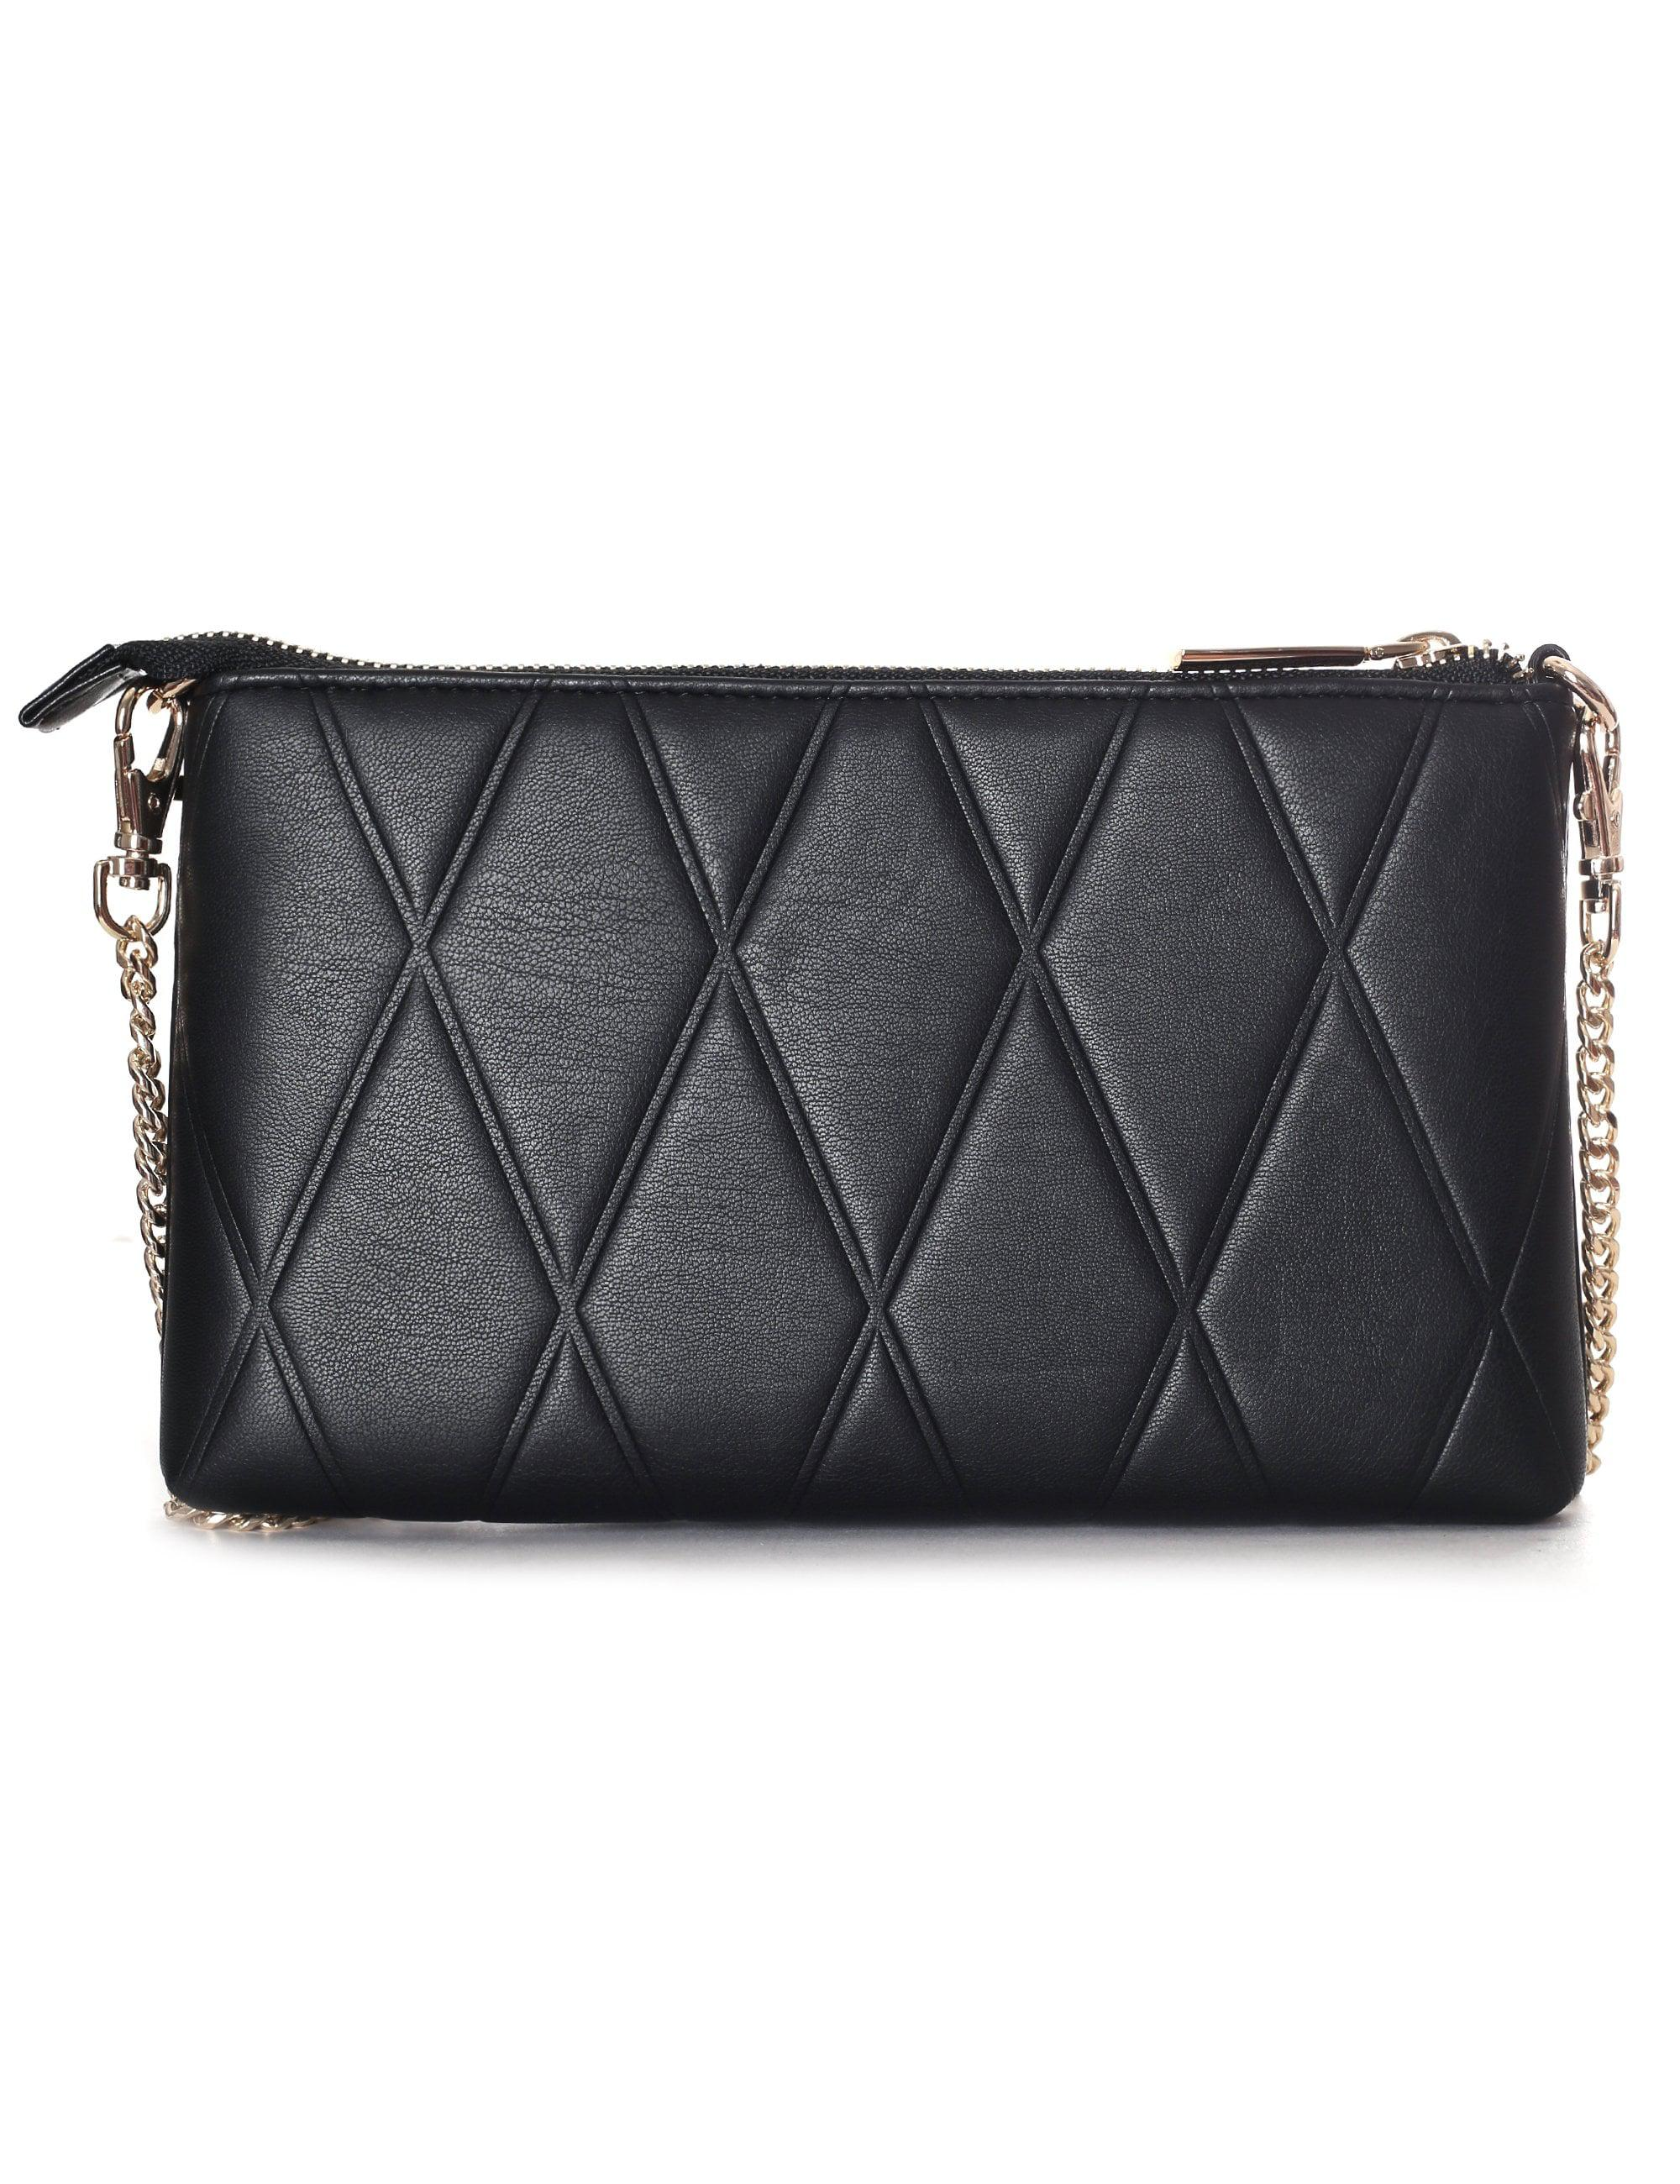 df831a2f01a0 Versace Jeans Embossed Letter Crossbody Bag in Black - Lyst